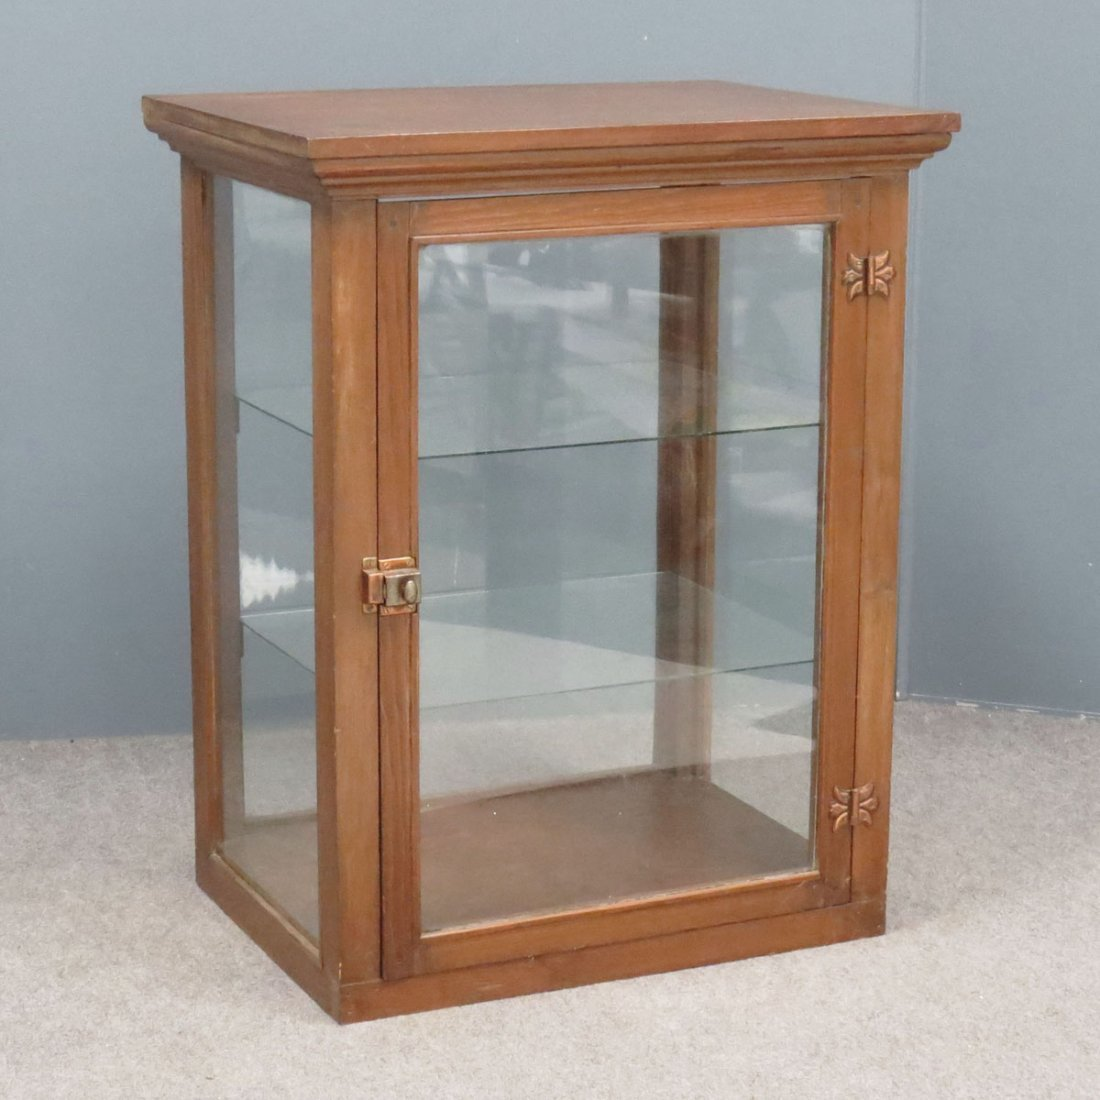 COUNTRY PINE COUNTER-TOP DISPLAY CABINET